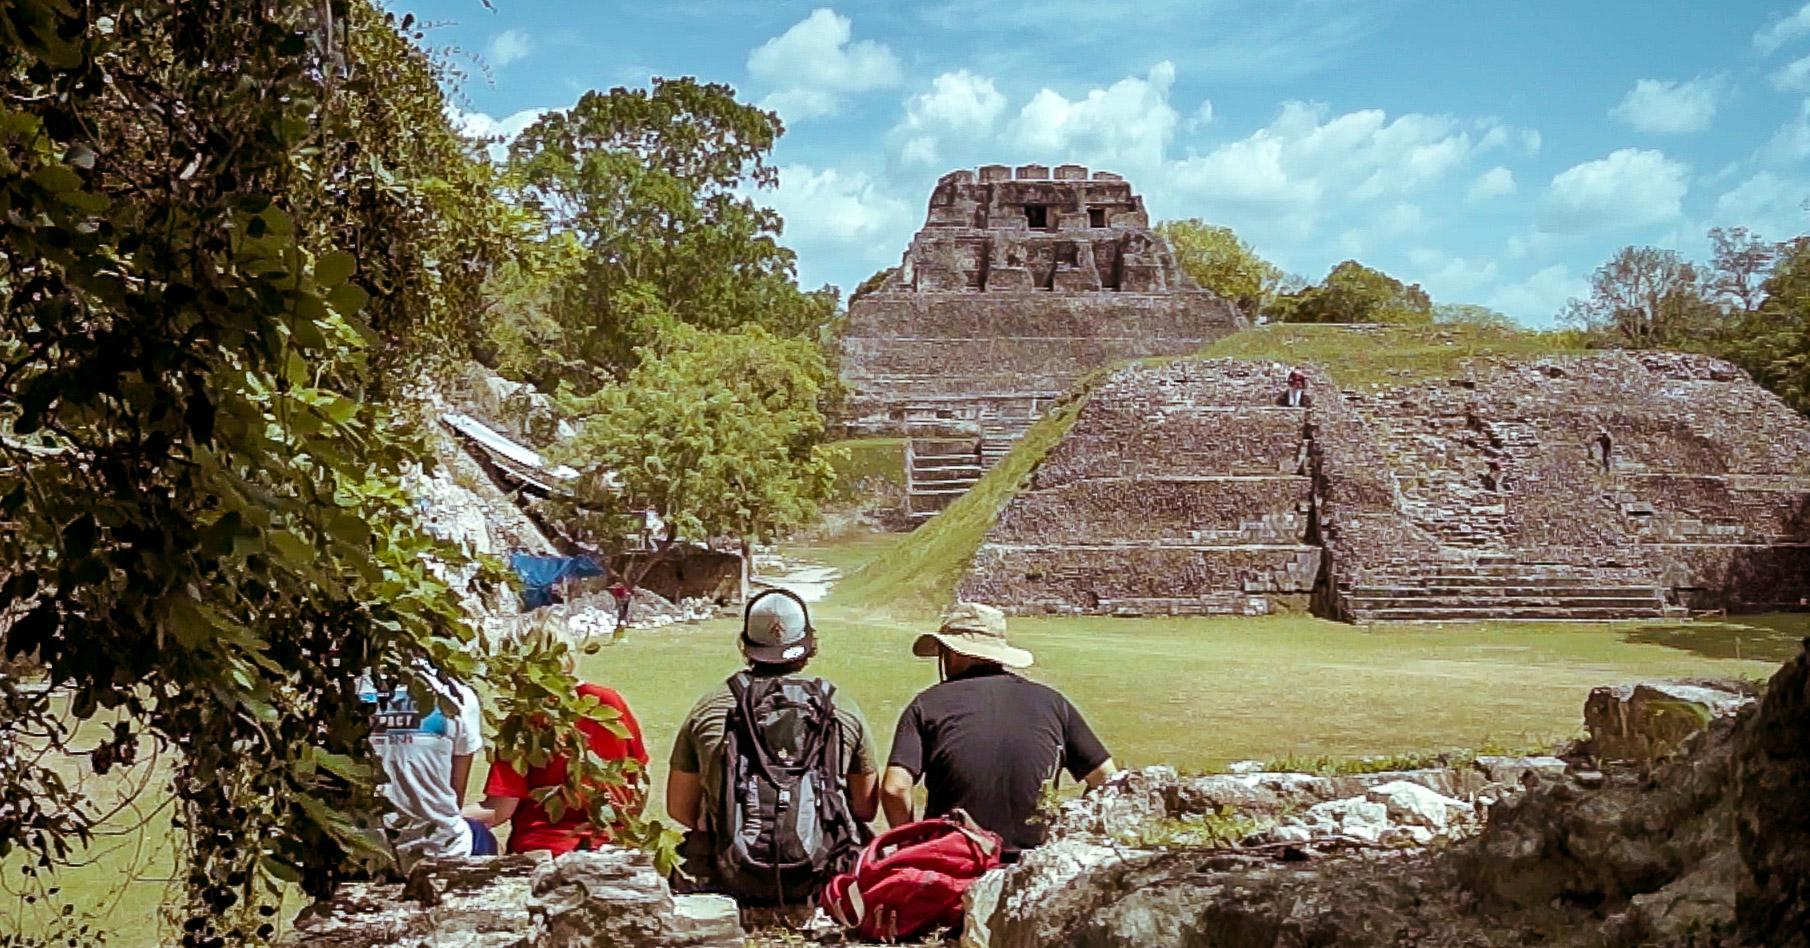 Discovery of Largest Tomb in Belize proves Xunantunich more legendary than credited.